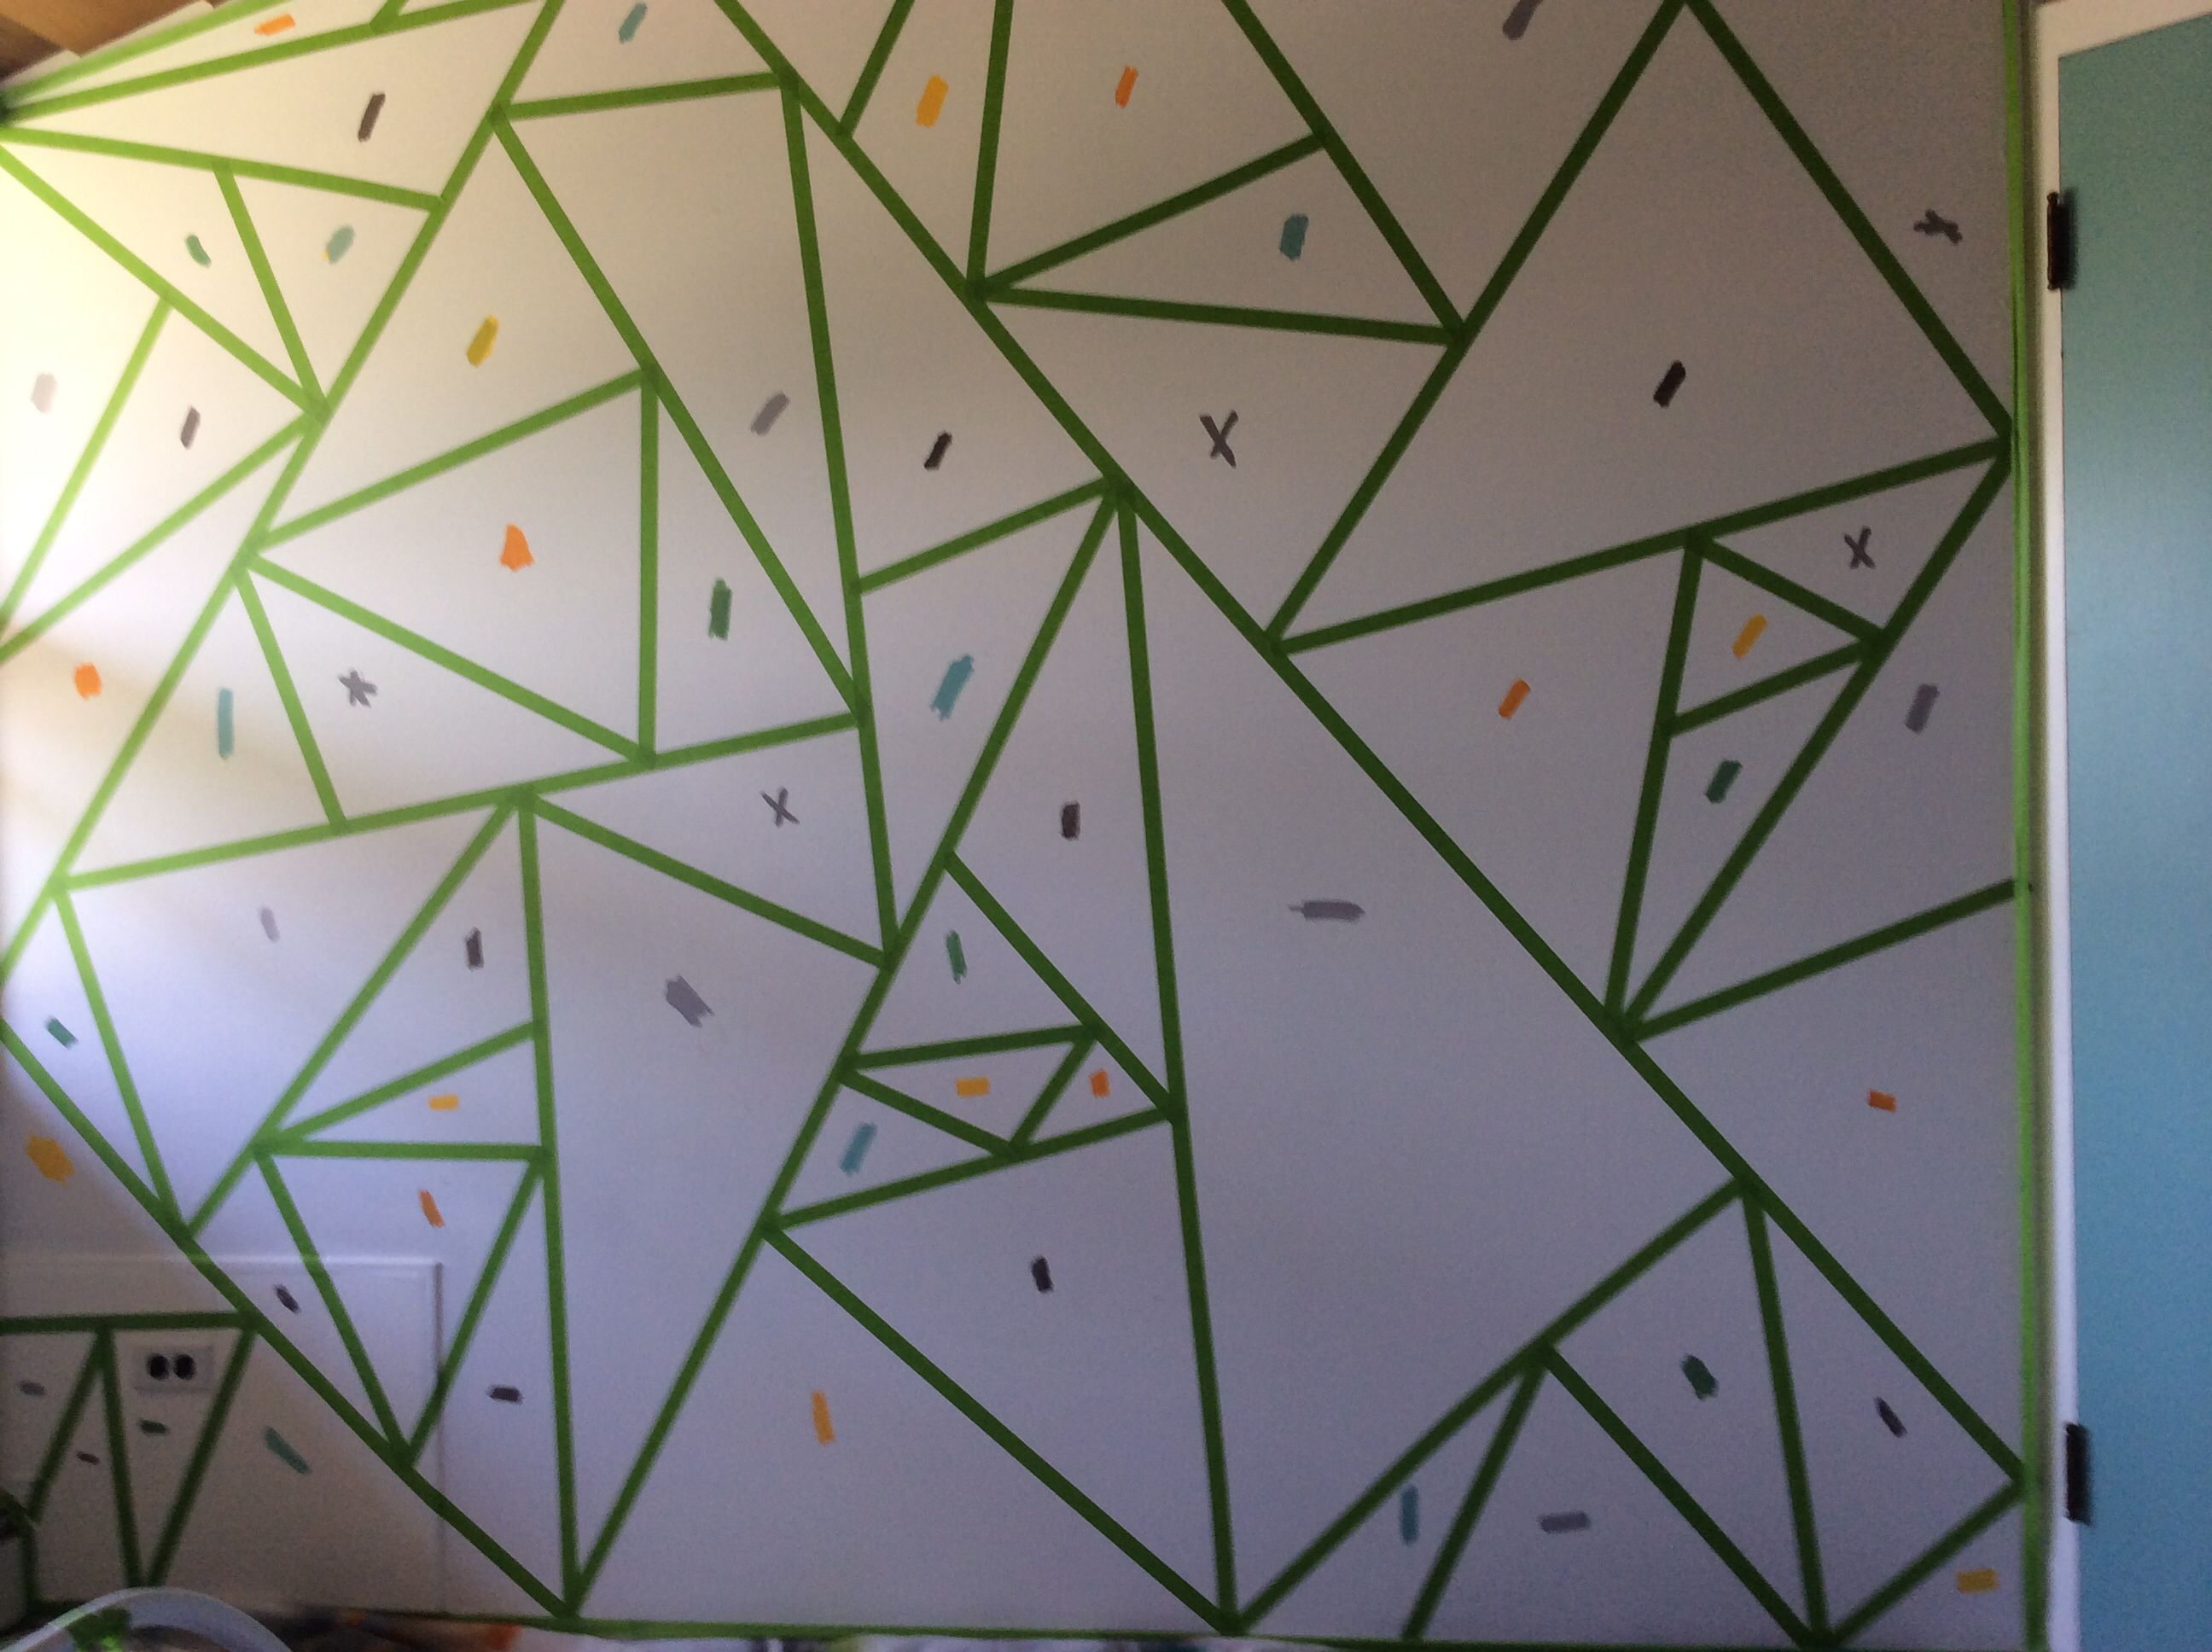 Tagged Colors Before Painting Begins Wall Paint Designs Wall Painting Wall Paint Patterns